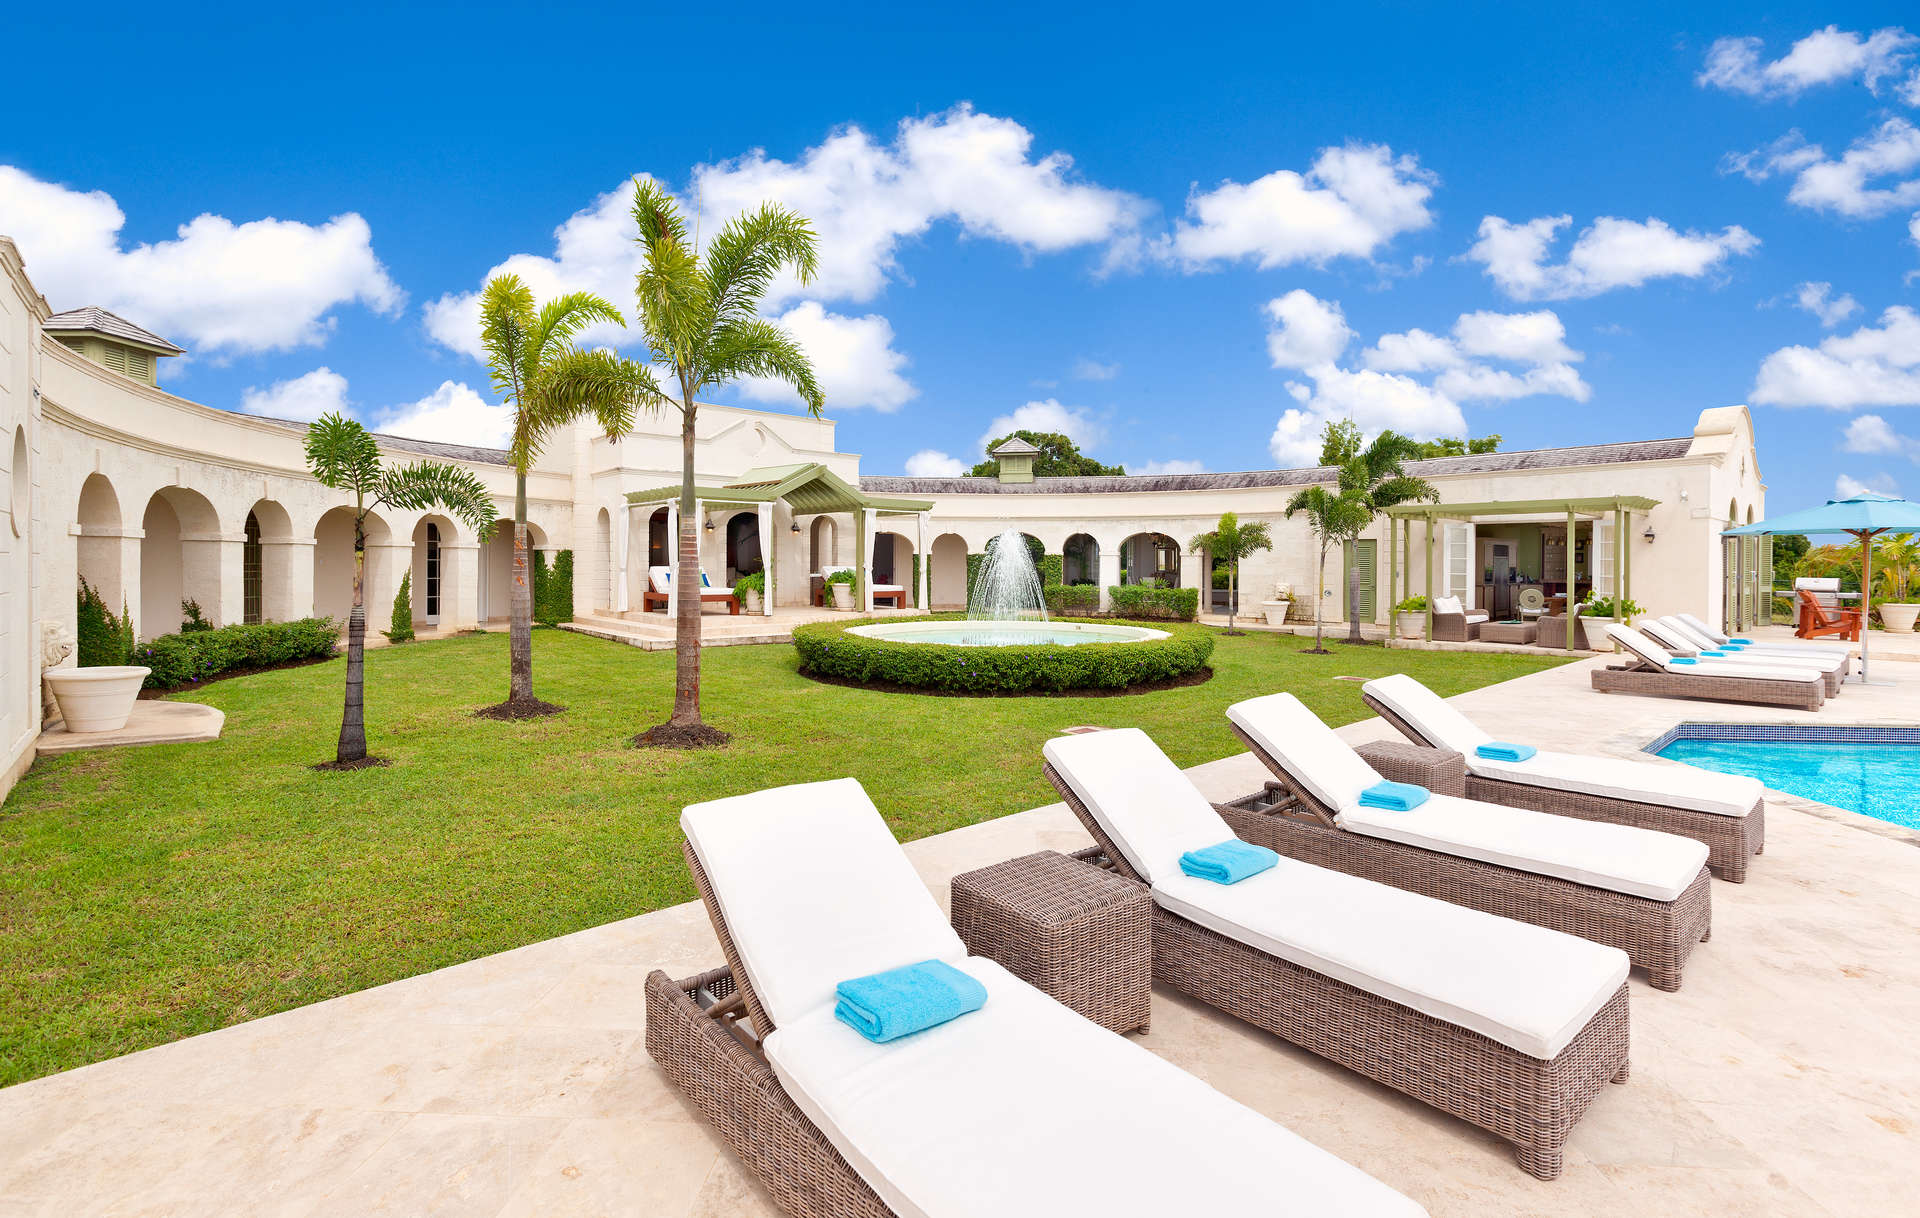 Luxury villa rentals caribbean - Barbados - St james - Weston - Marsh Mellow - Image 1/16